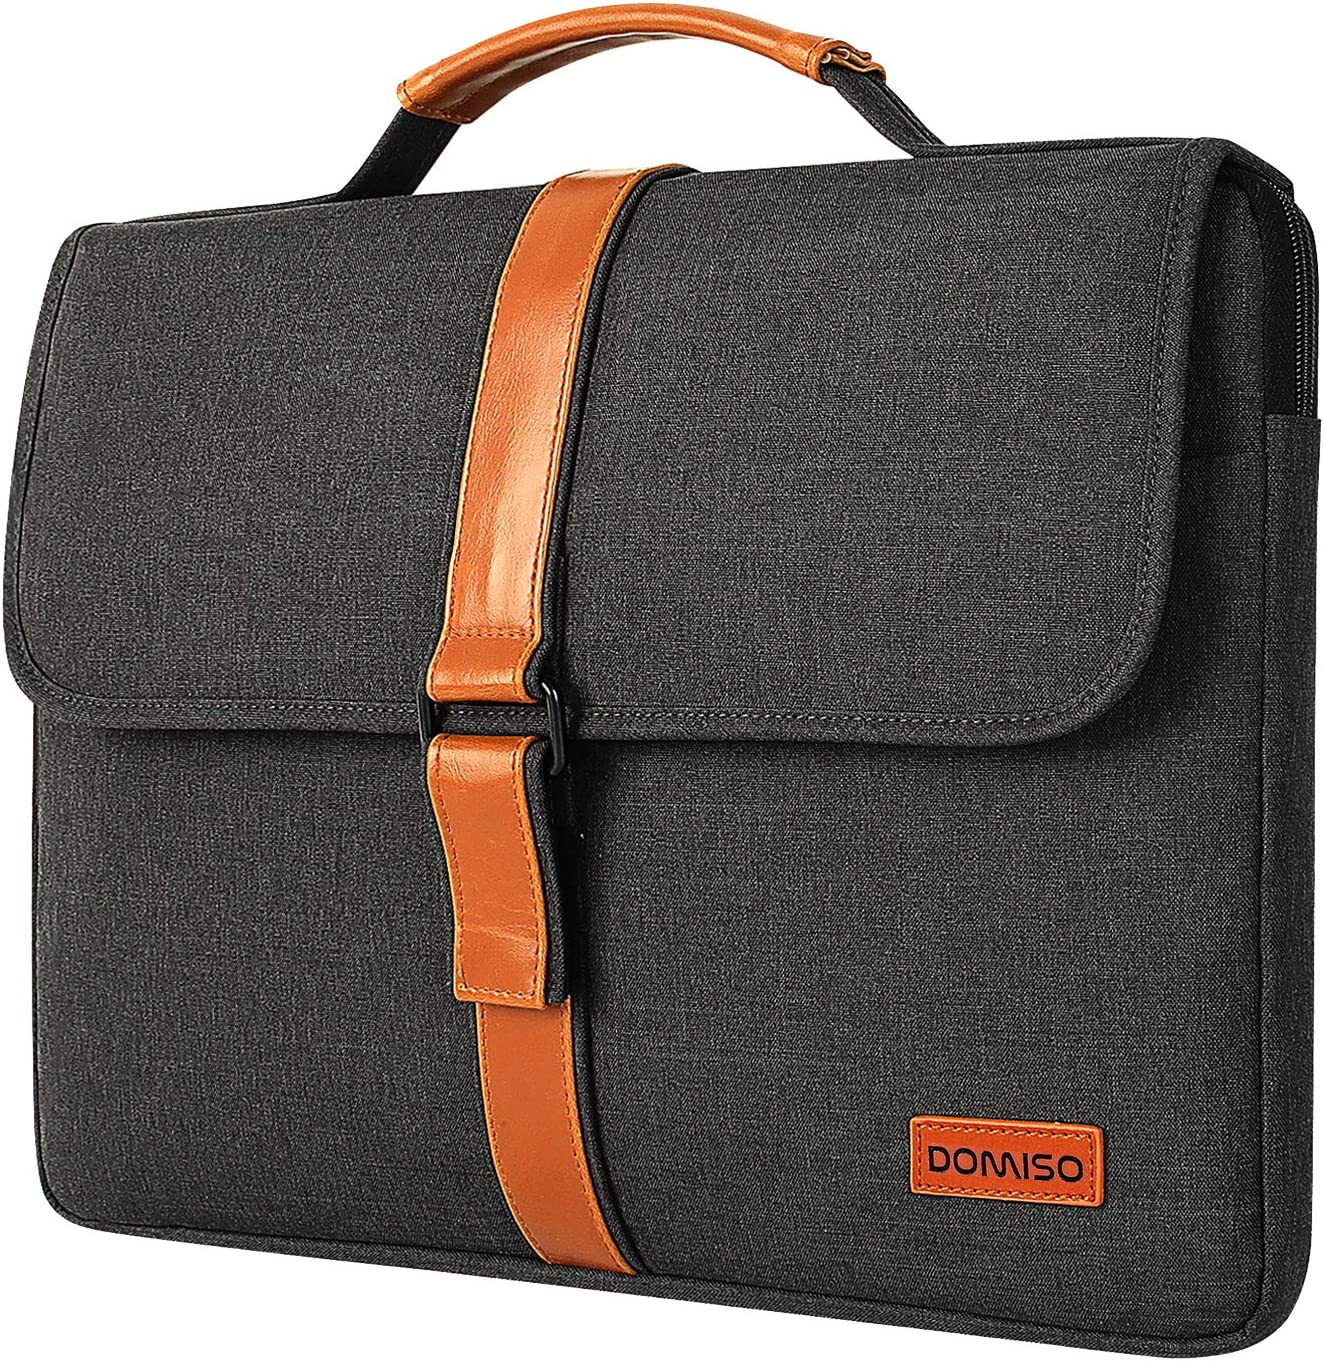 DOMISO 17-17.3 Inch Laptop Sleeve Case Notebook Shockproof Handbag Compatible with 17